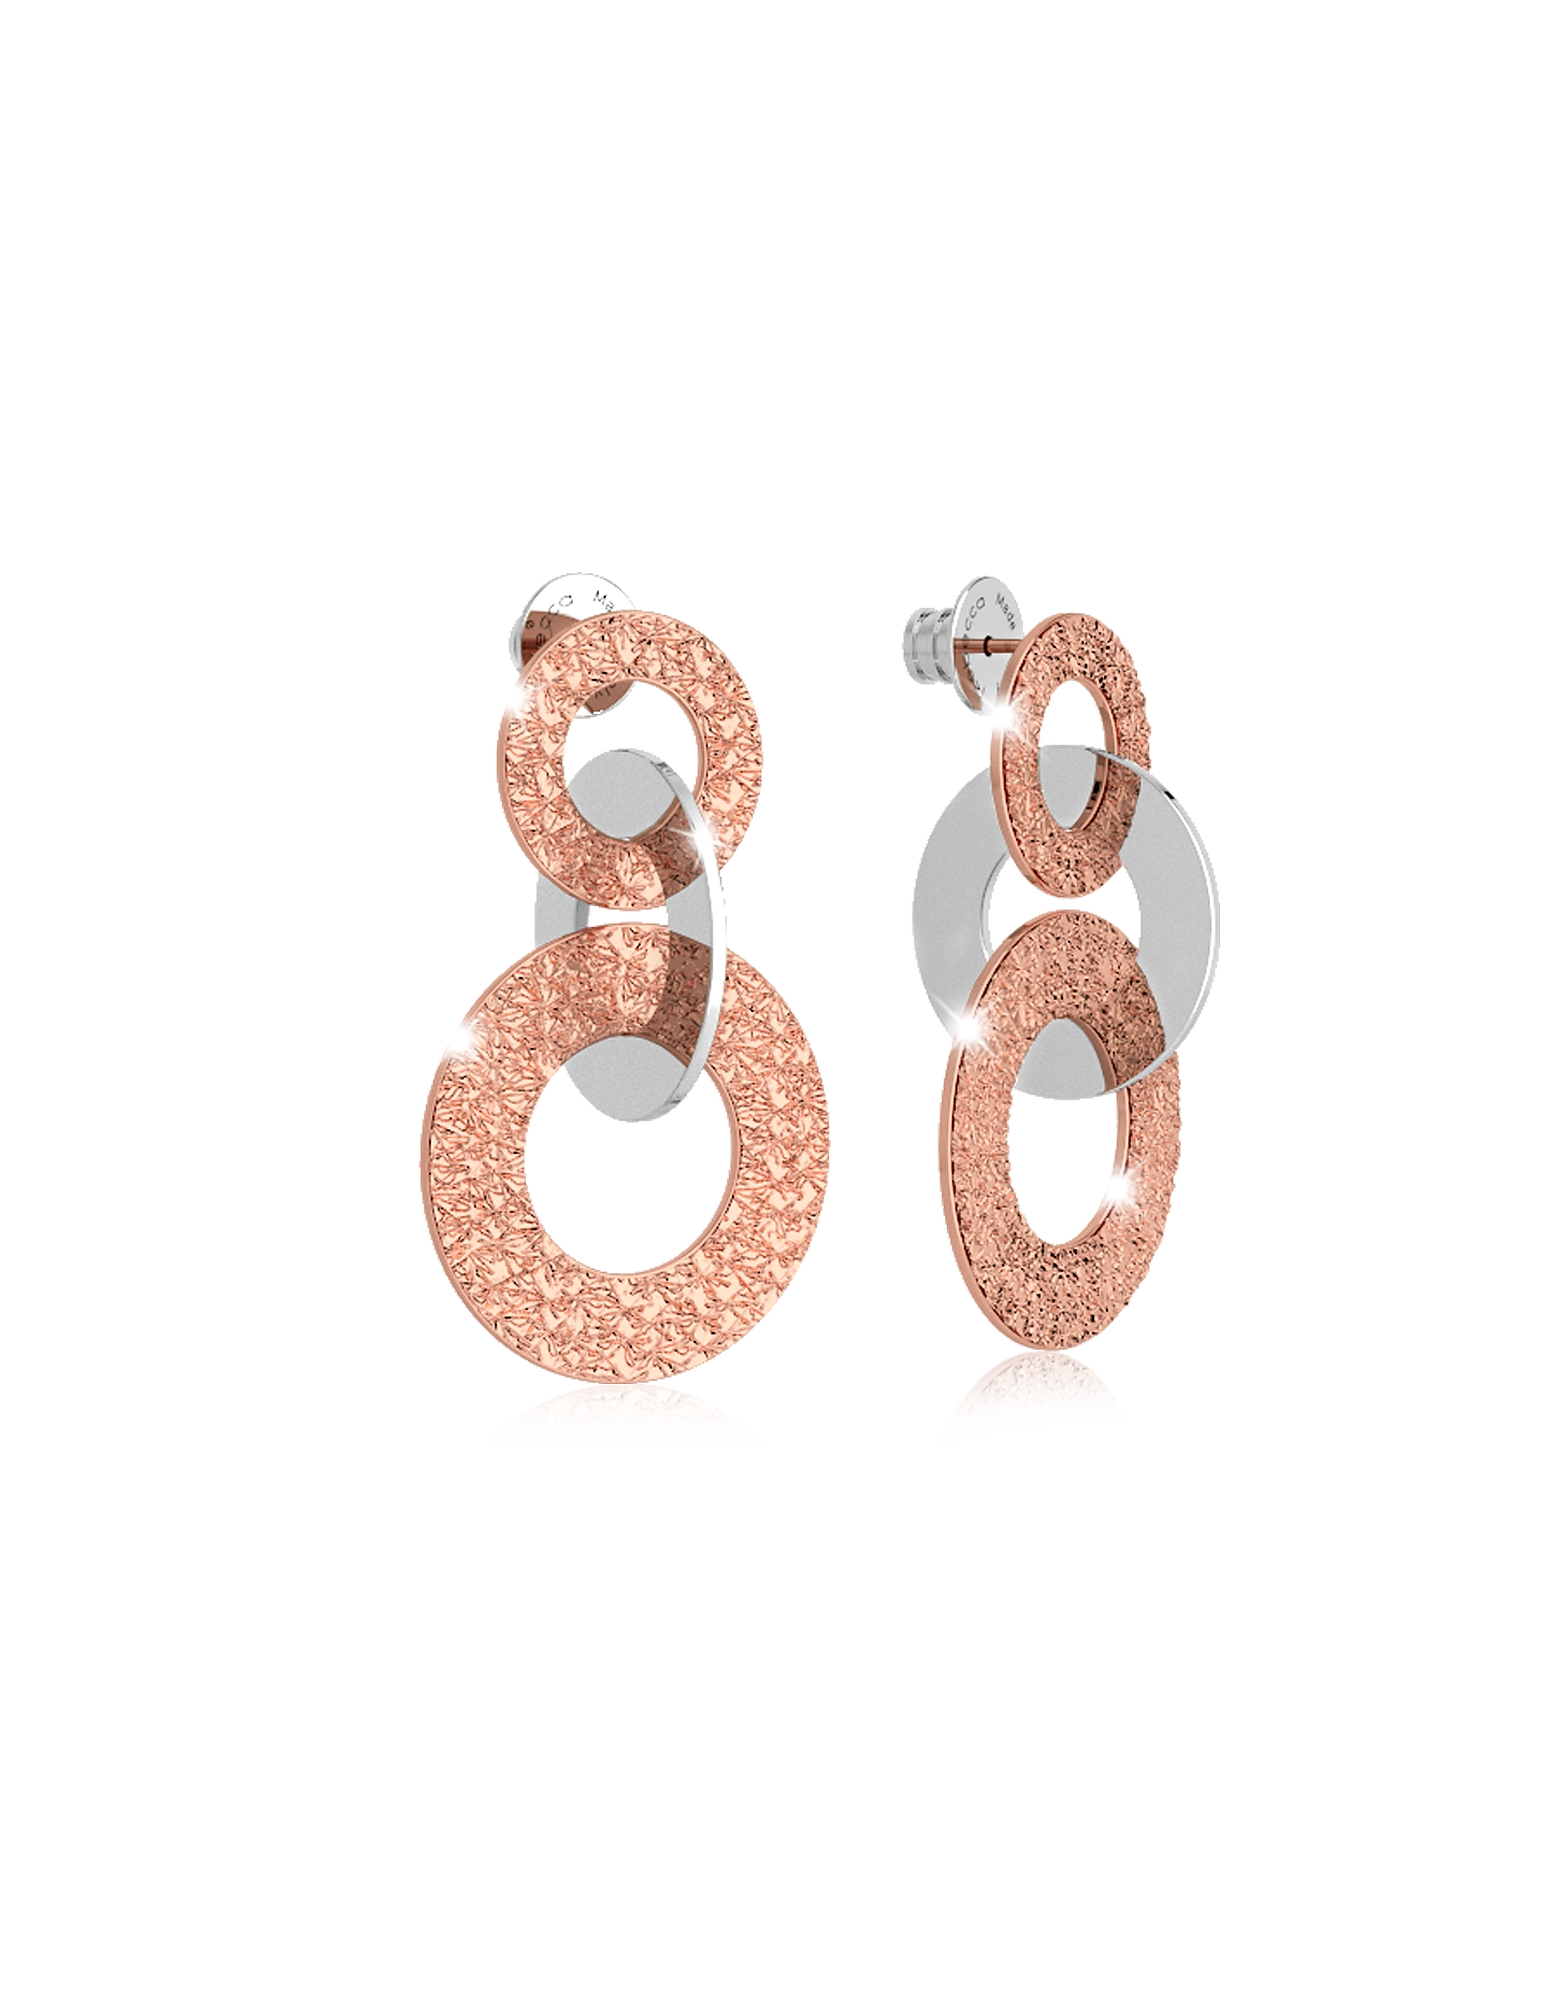 Rebecca Earrings, R-ZERO Rose Gold Over Bronze Earrings